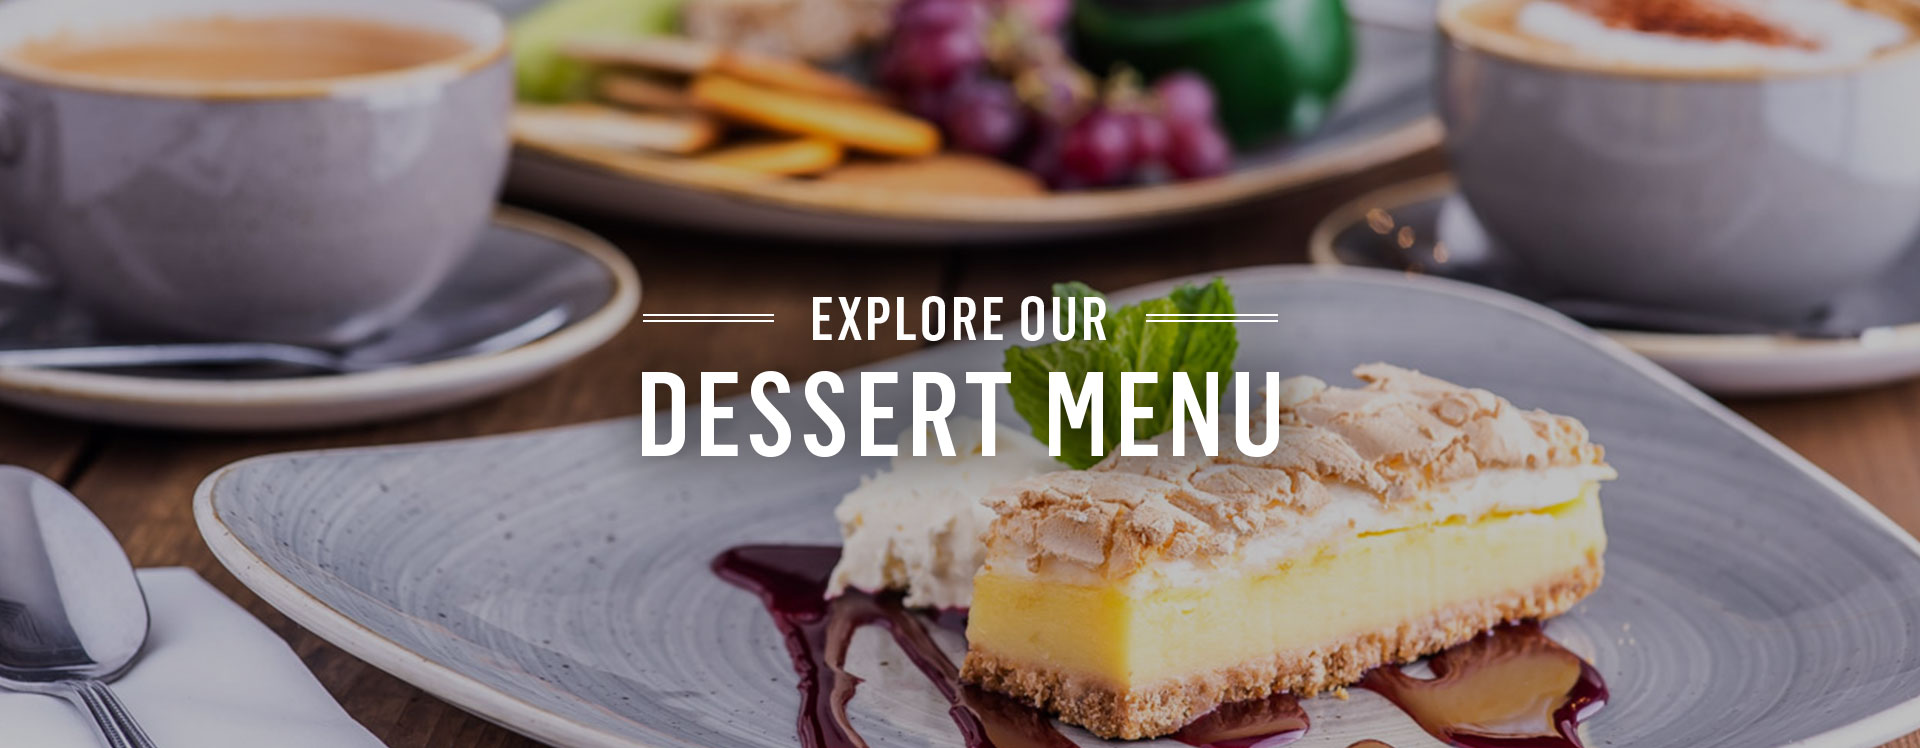 Dessert menu at The Eagle and Child - Book a table